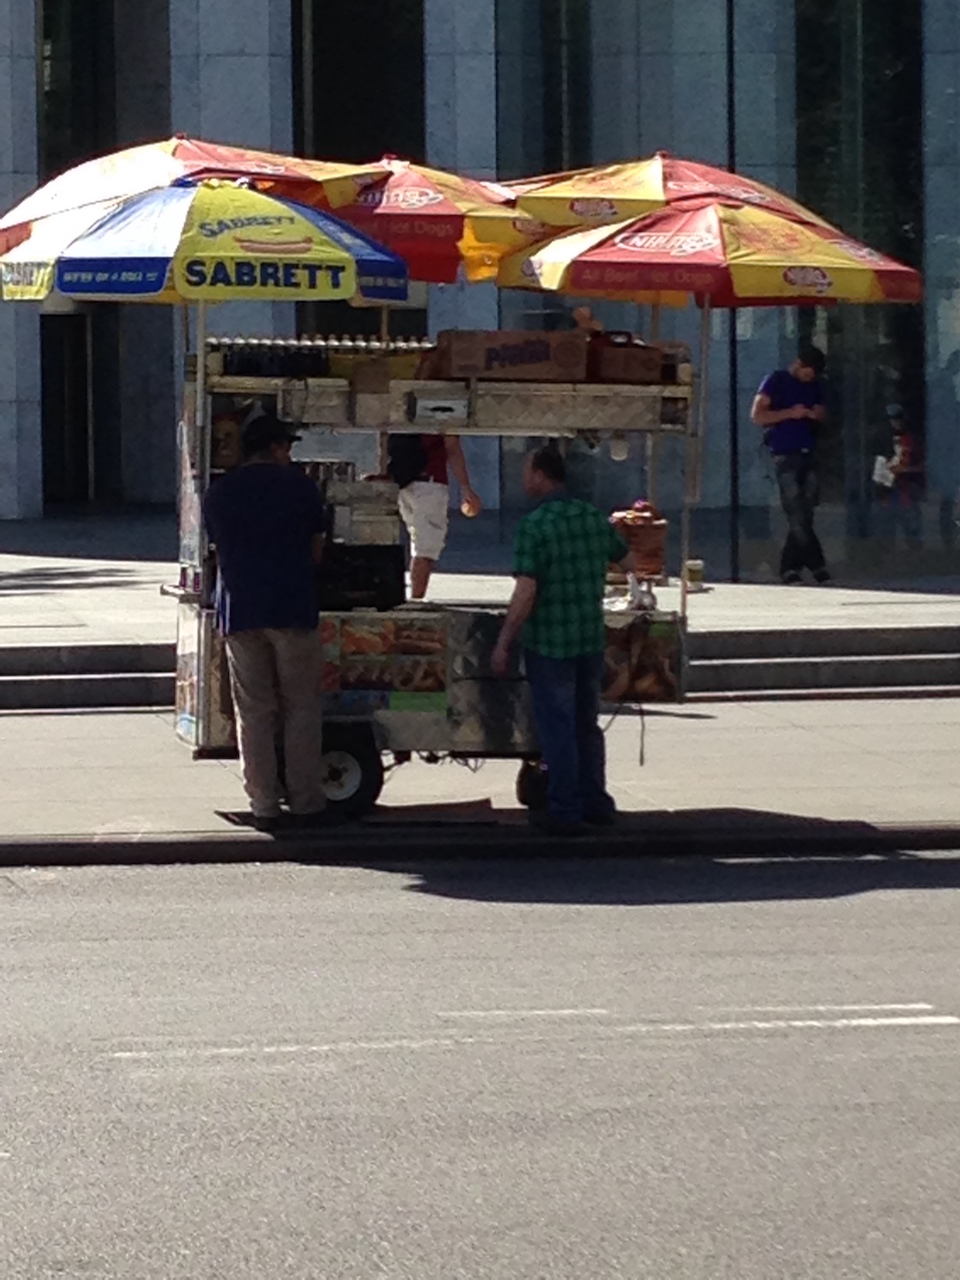 Hot Dog Seller